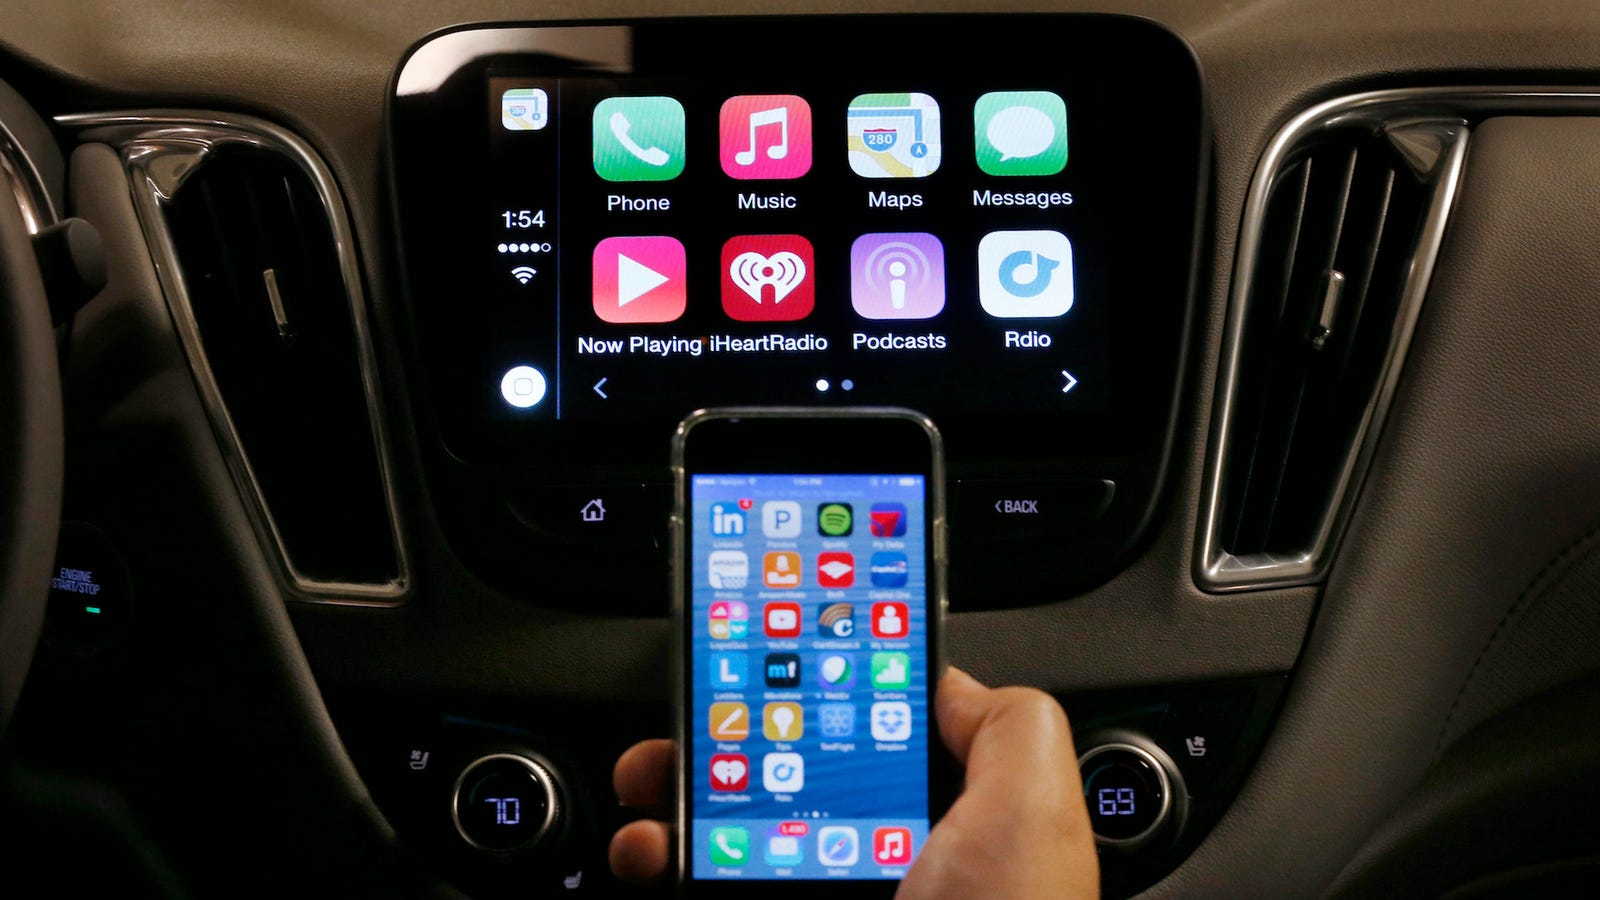 Bmw wants to turn apple carplay into a subscription service for Honda fit carplay